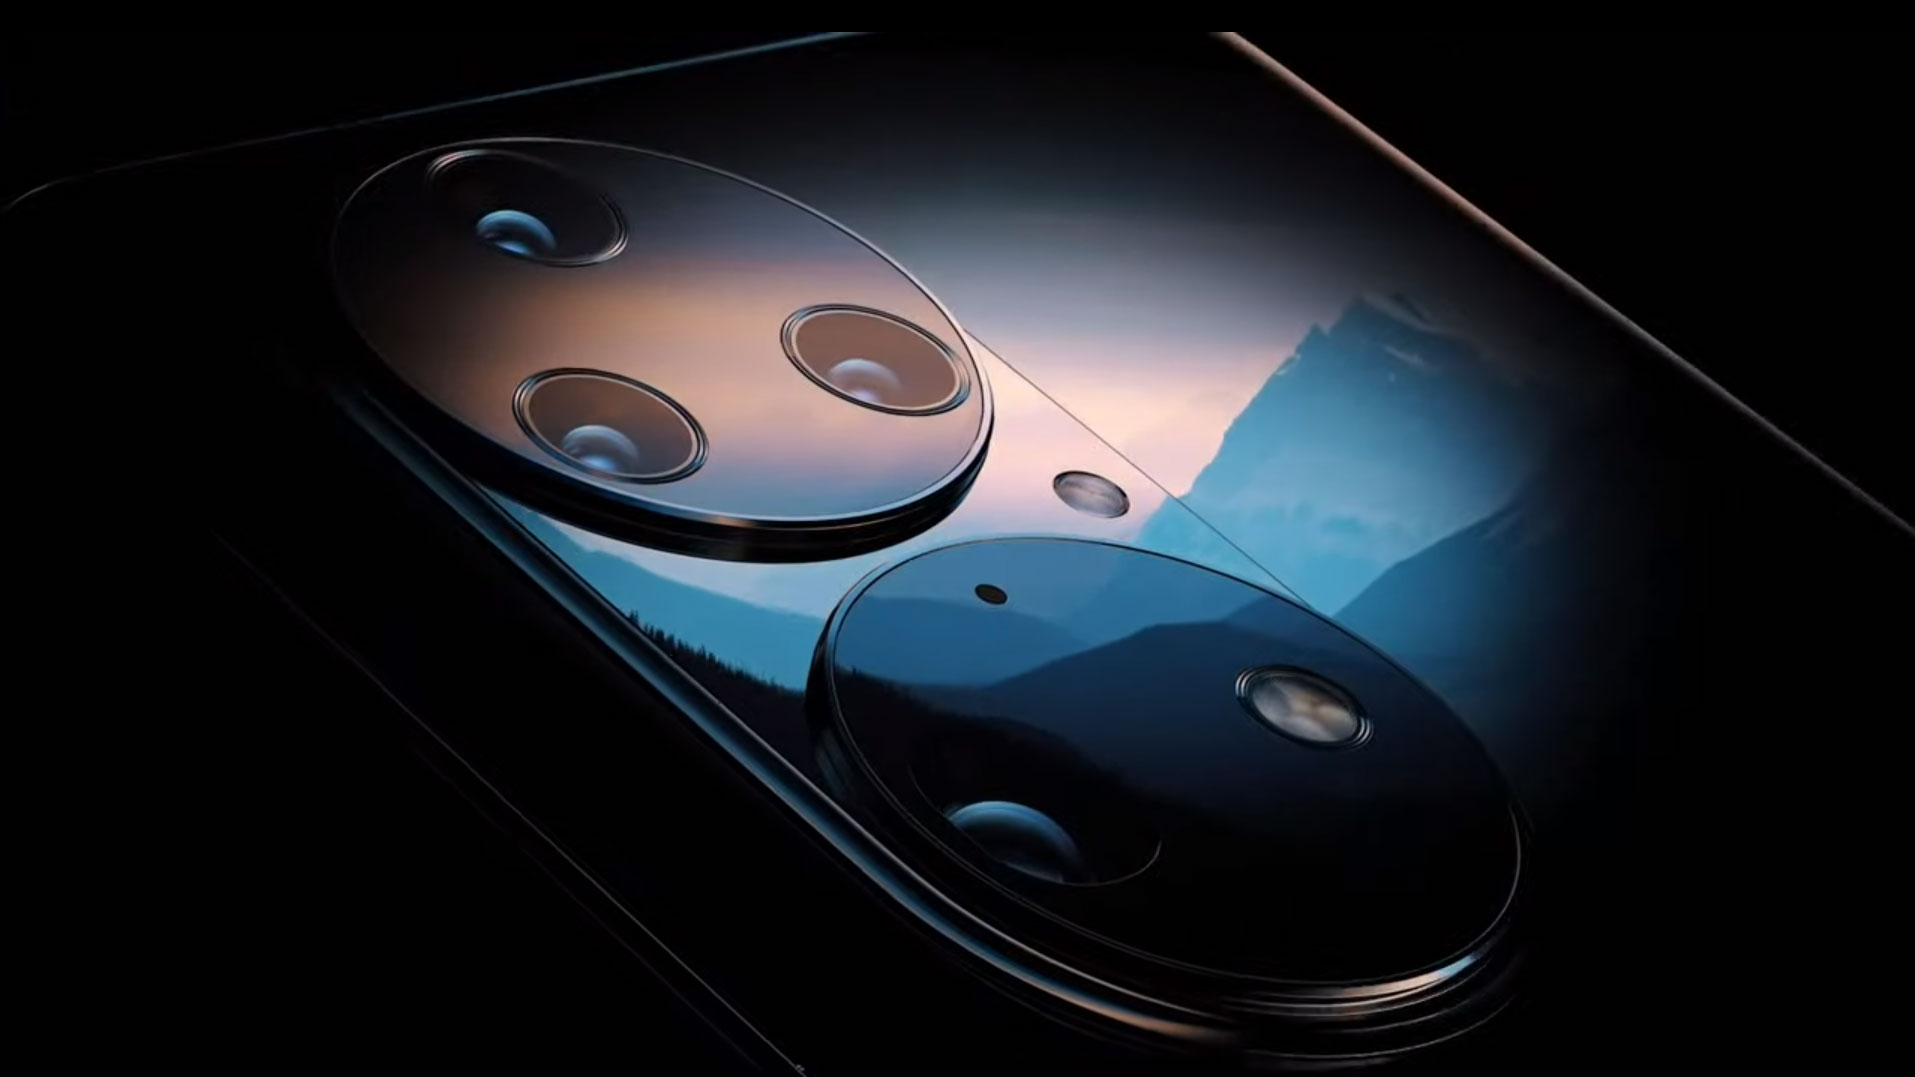 Huawei P50 Pro camera specs officially revealed for the first time